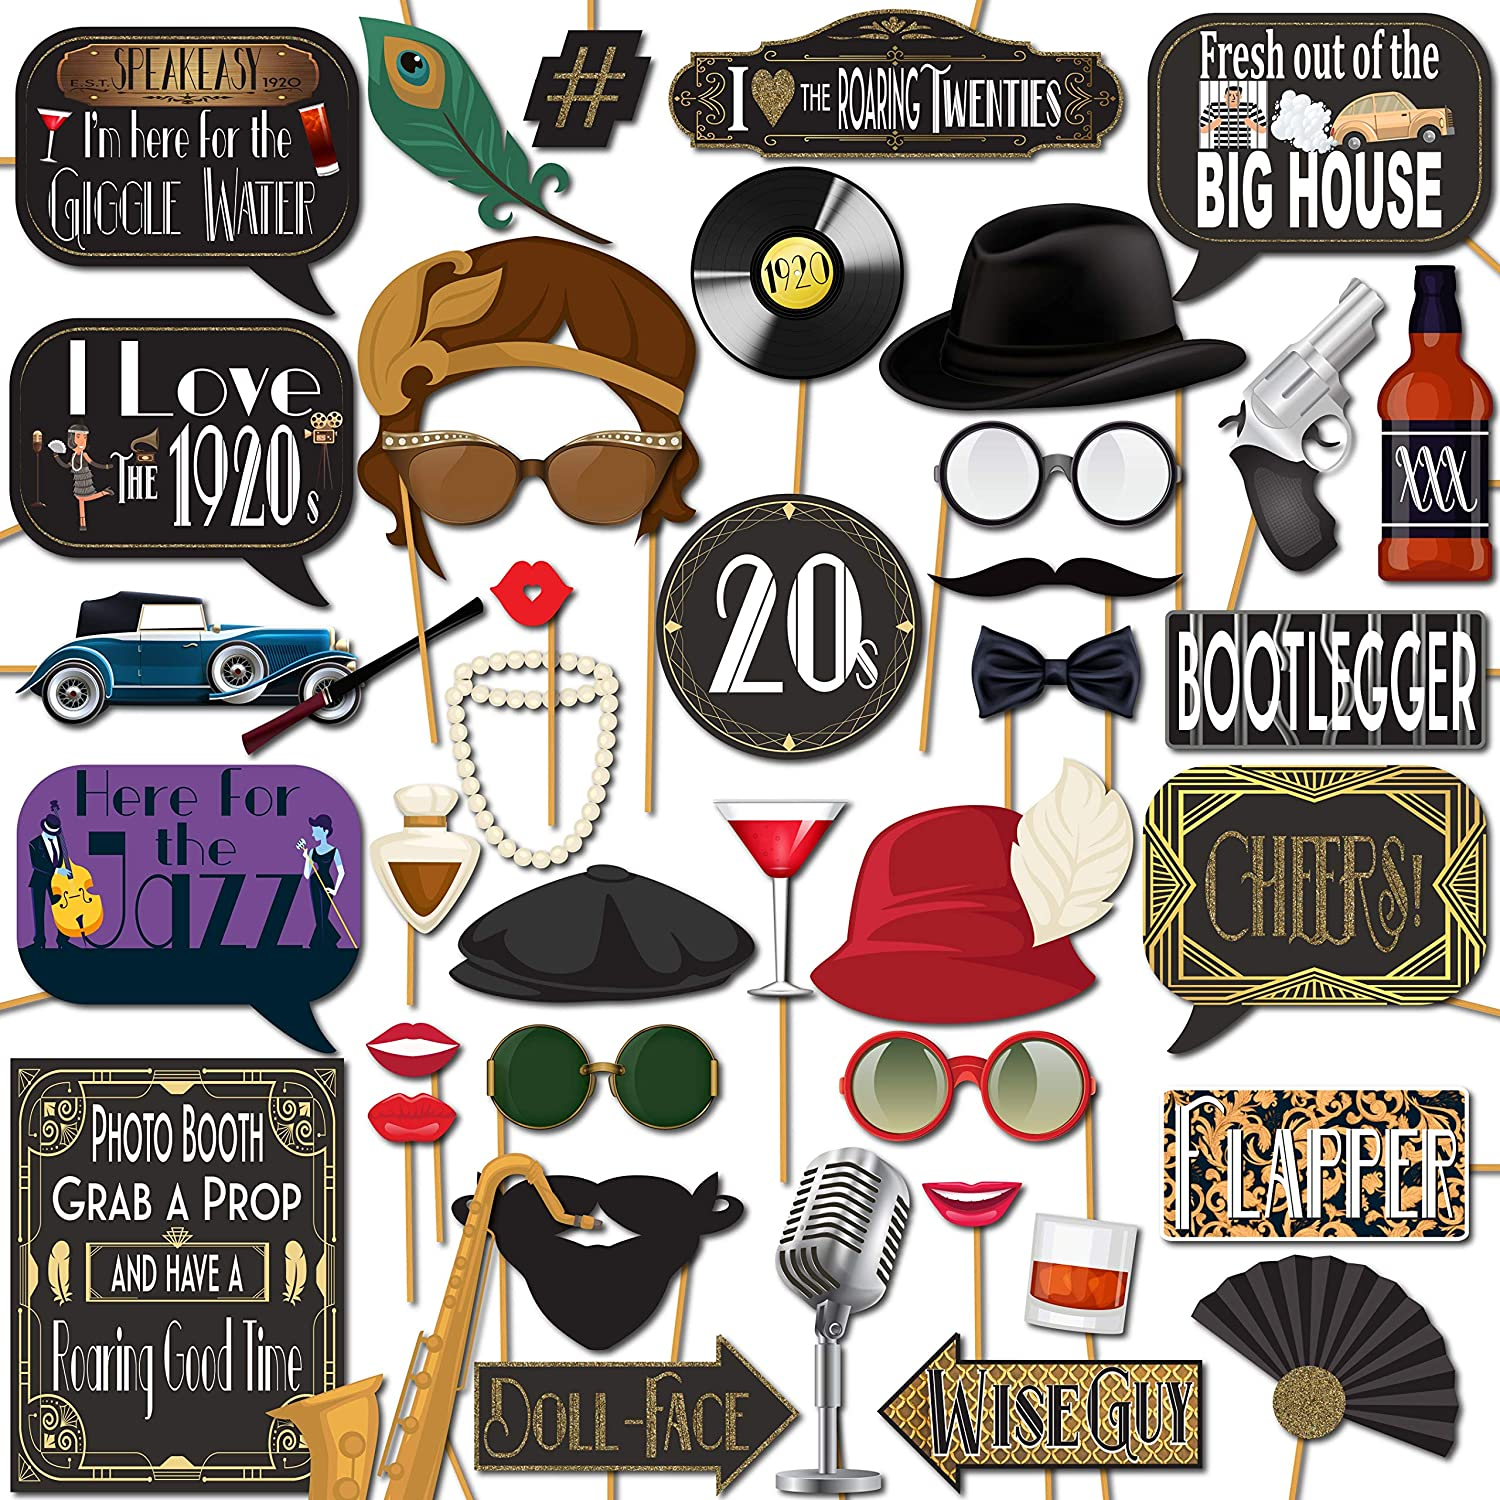 1920s Flapper Roaring 20's Party Photo Booth Props 41 Pieces with Wooden Sticks and Strike a Pose Sign by Outside The Booth